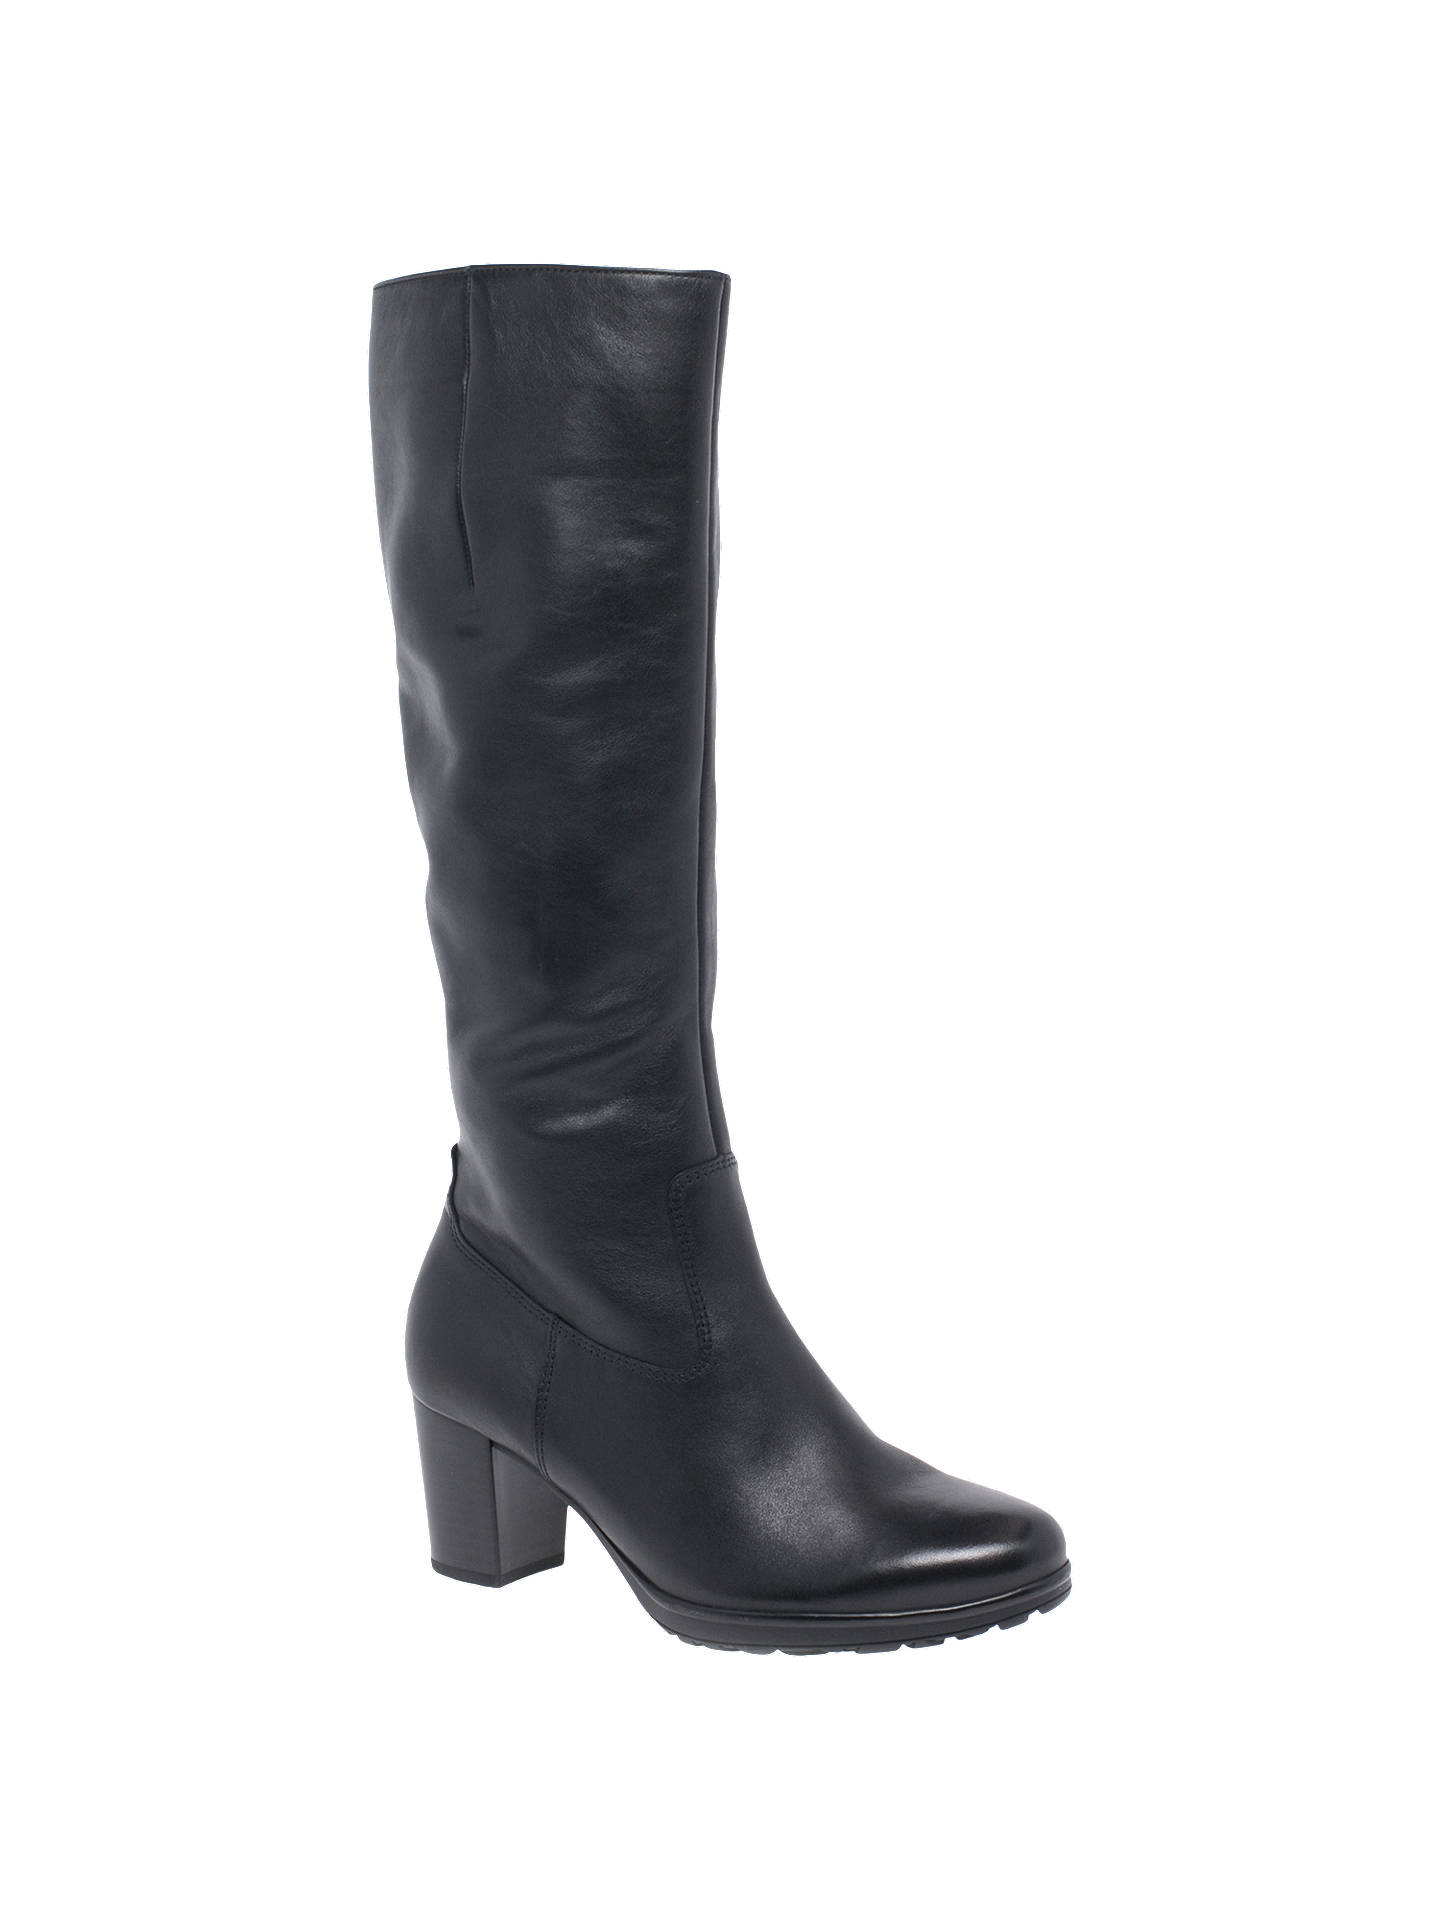 online here separation shoes outlet store sale Gabor Hillary Slim Fit Knee High Boots, Black at John Lewis & Partners